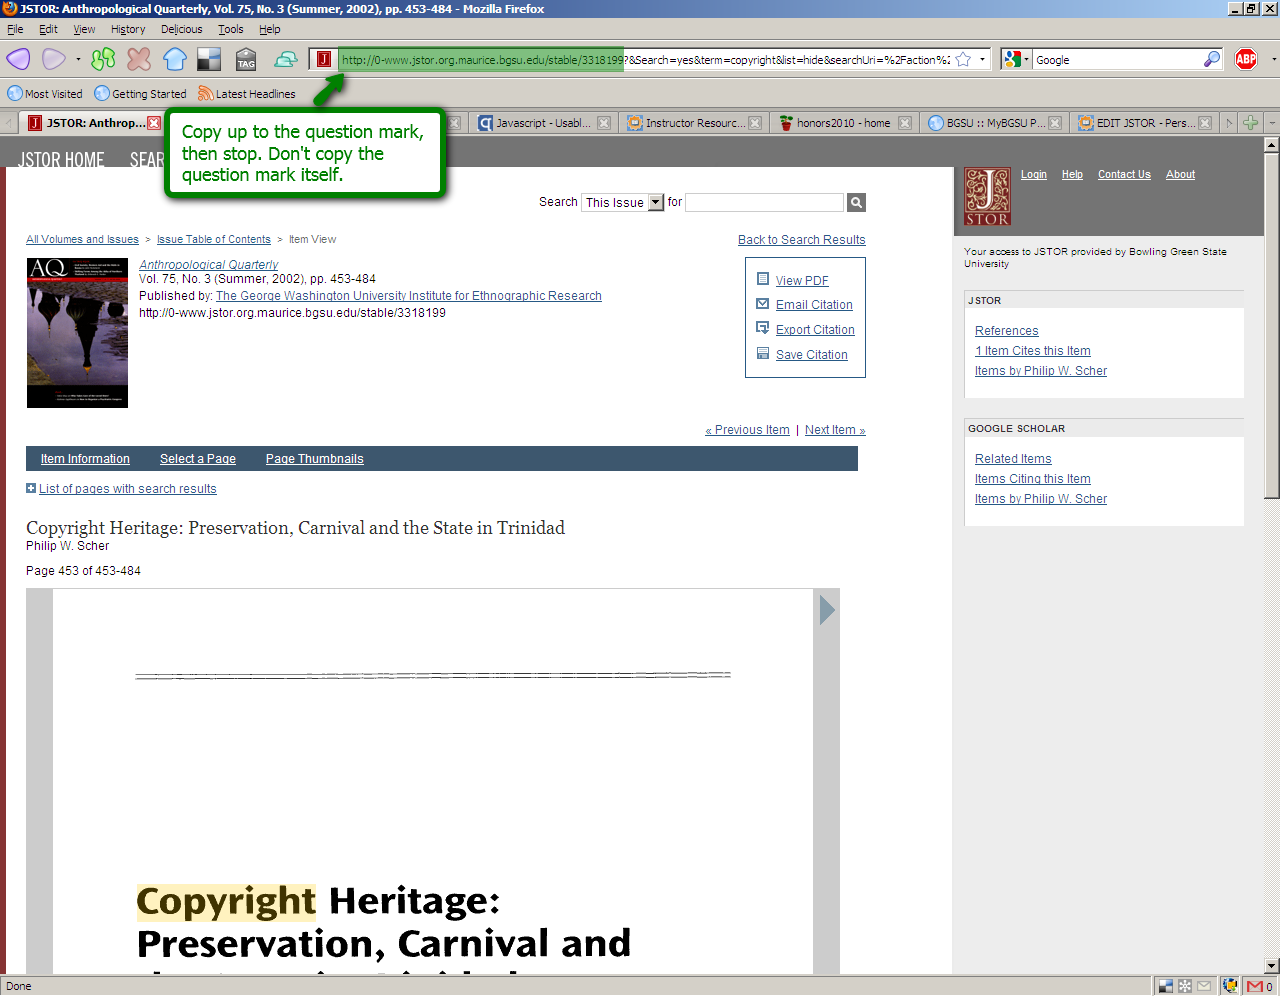 JSTOR search screen highlighting how to get a persistent link: Copy up to the question mark, then stop. Don't copy the question mark itself.